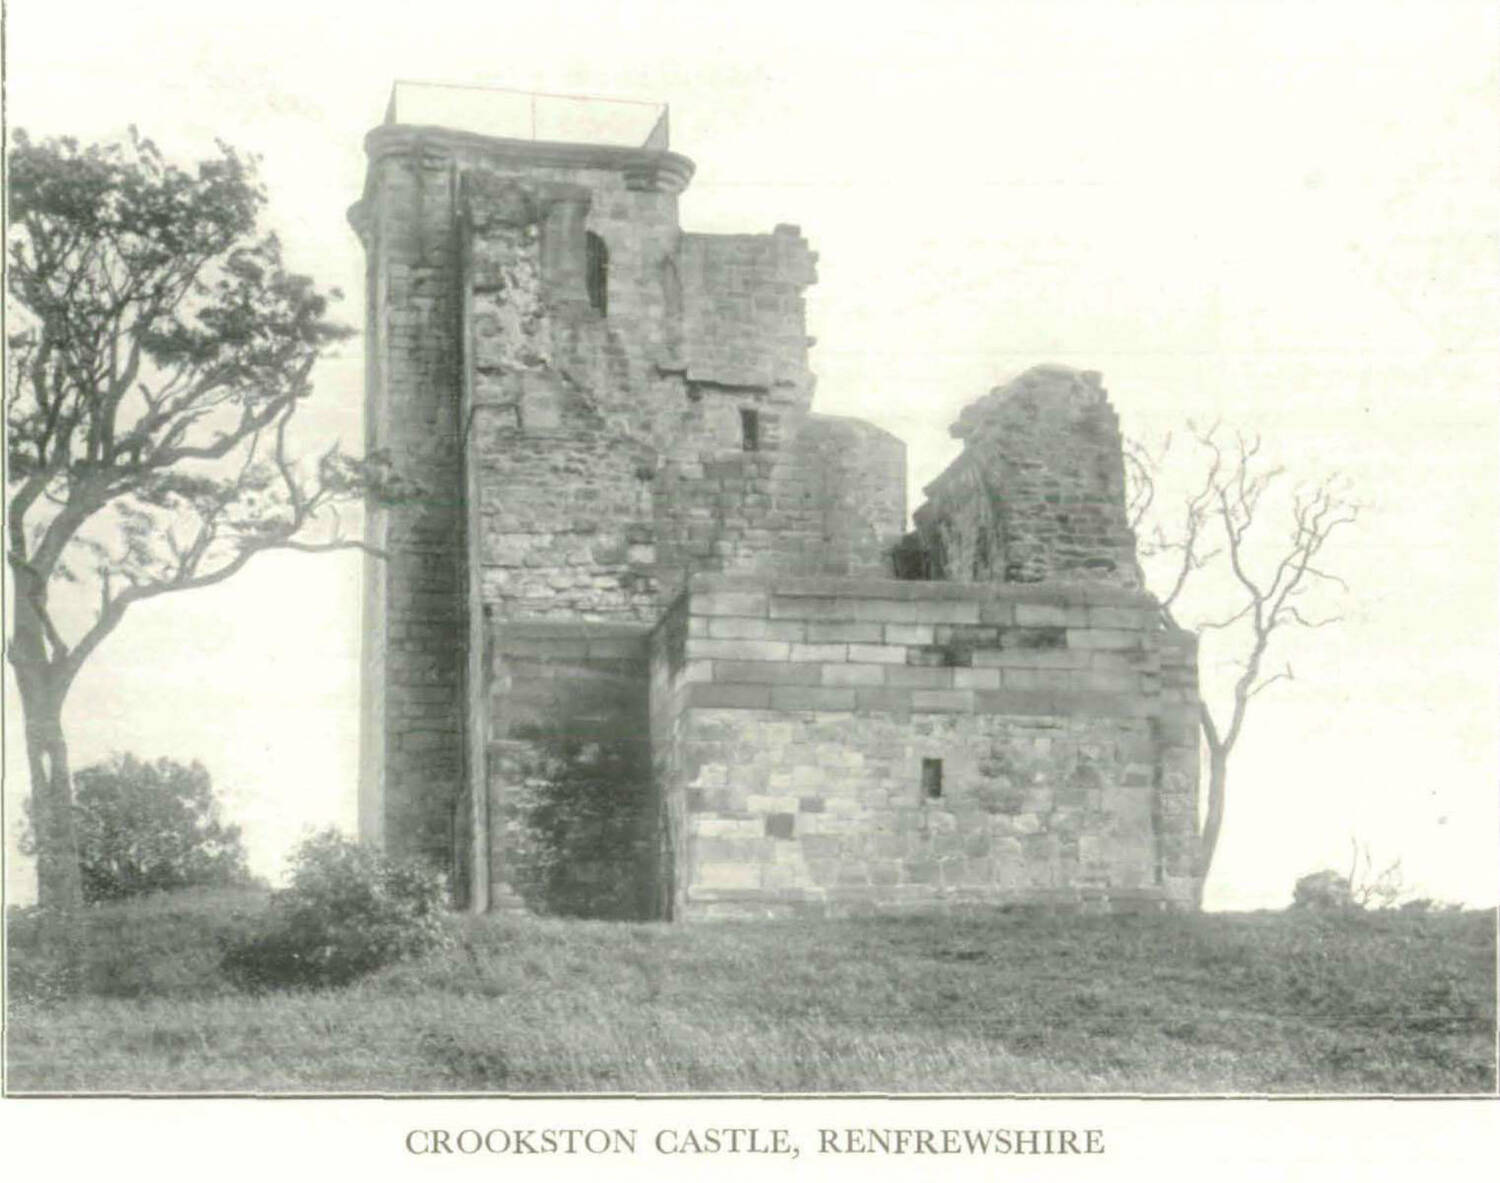 Black and white photo of the ruin of Crookston Castle